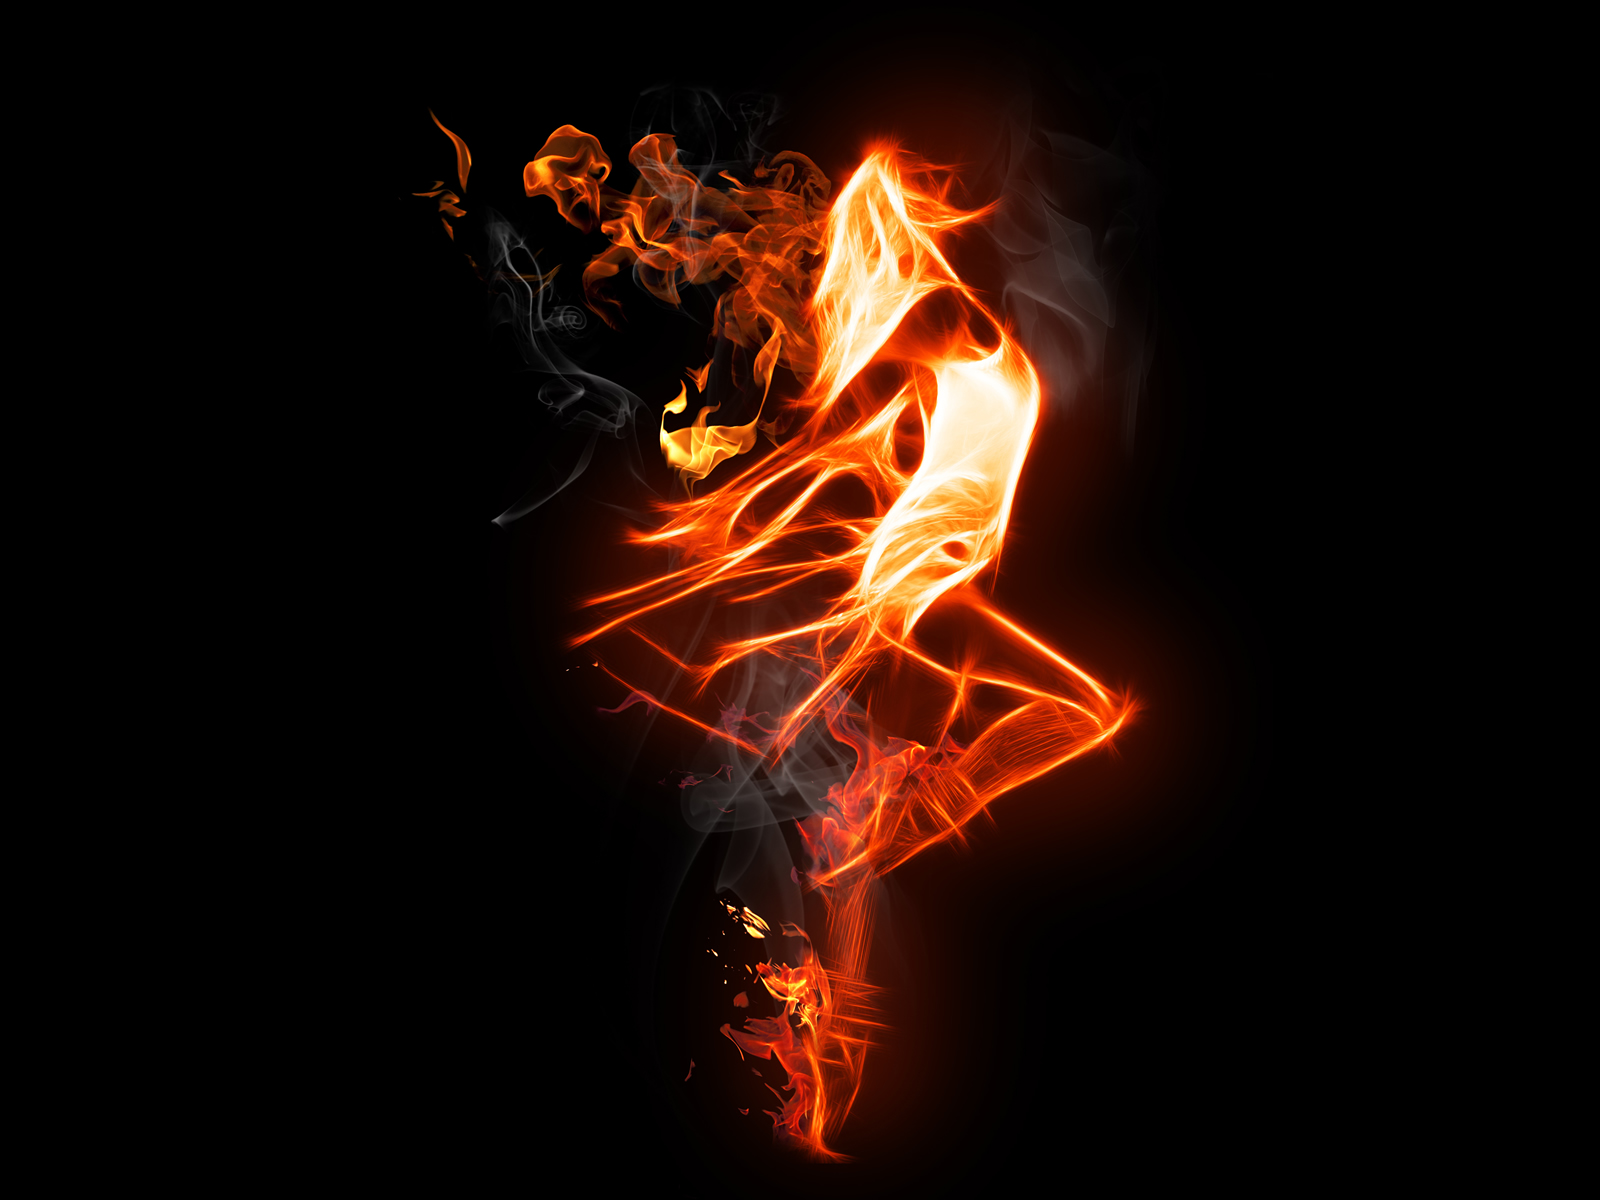 18 Awesome HD Fire Wallpapers   HDWallSourcecom 1600x1200